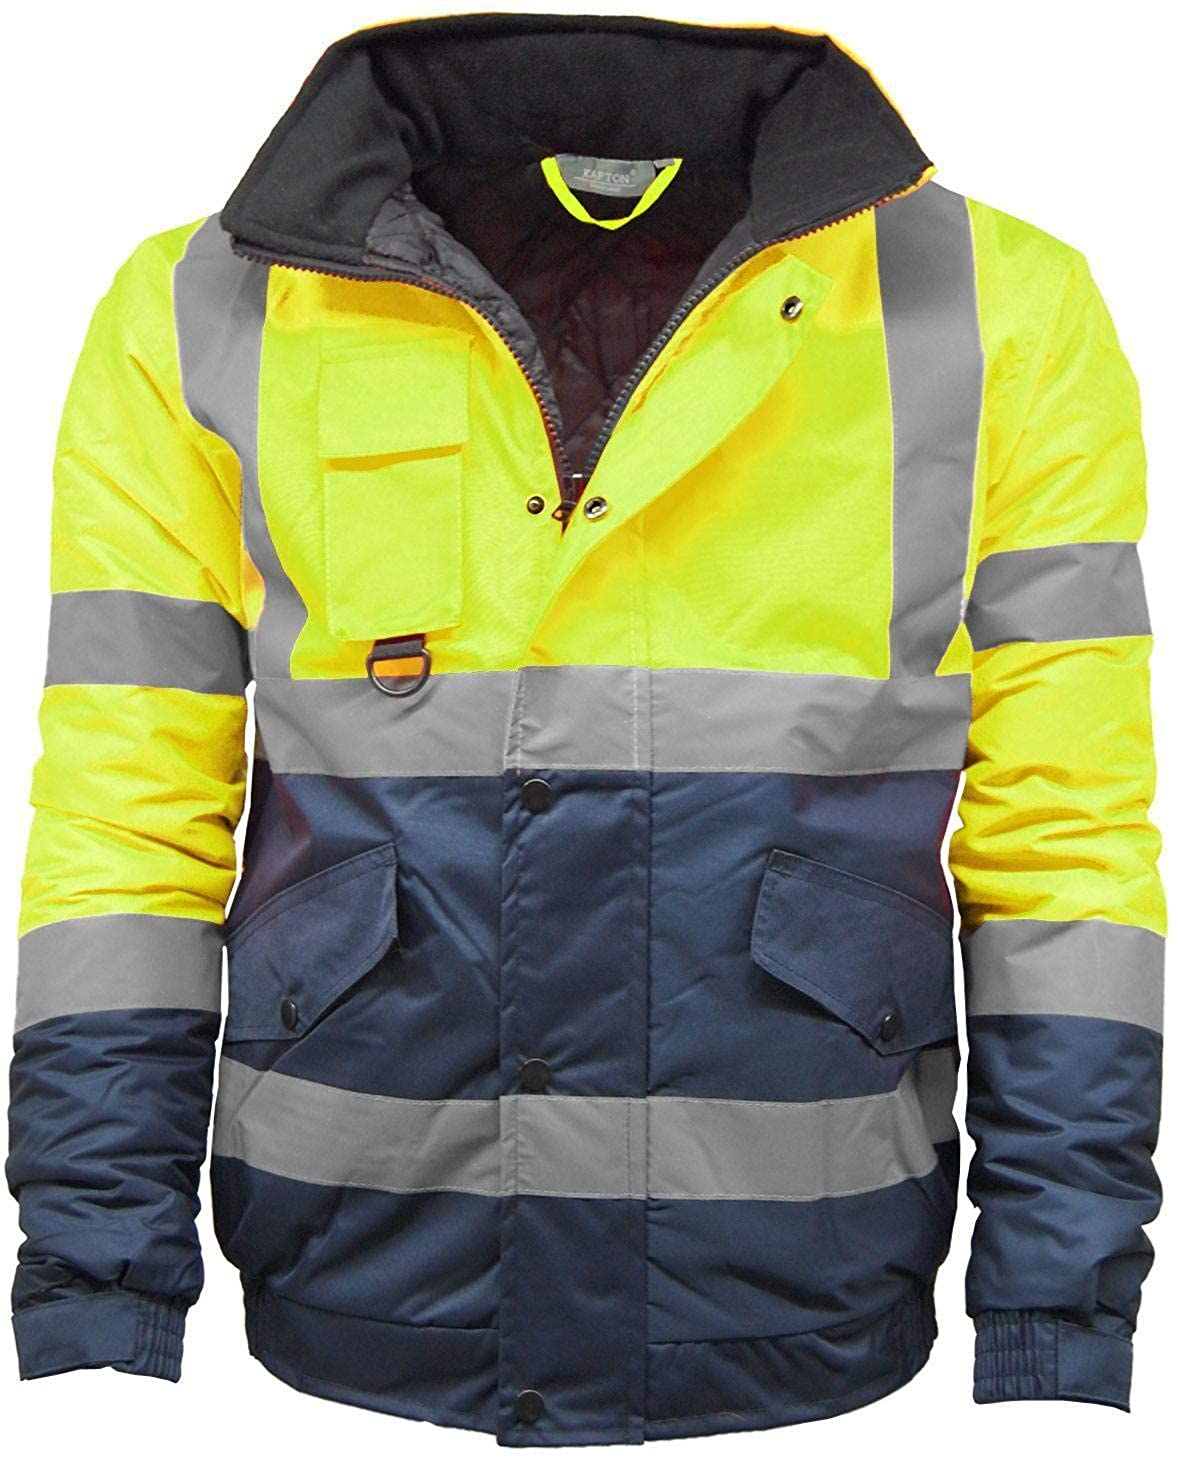 Kapton Mens Waterproof Hi Visibility Two Tone Safety Quilted Bomber Jacket Standard Safety Work Wear Jackets HV301.